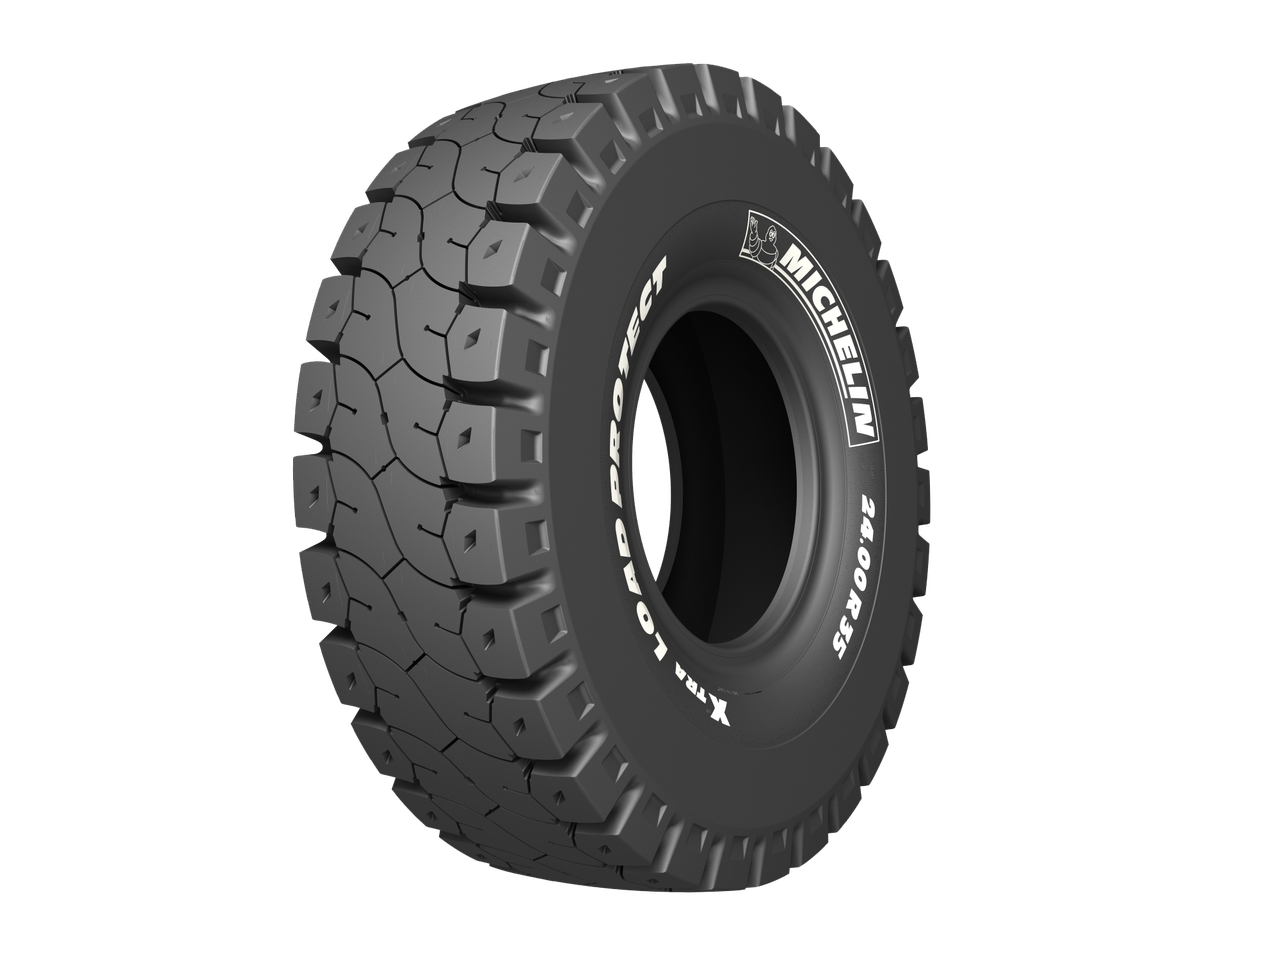 Шина 24.00 R 35 Michelin XTRA LOAD PROTECT A4